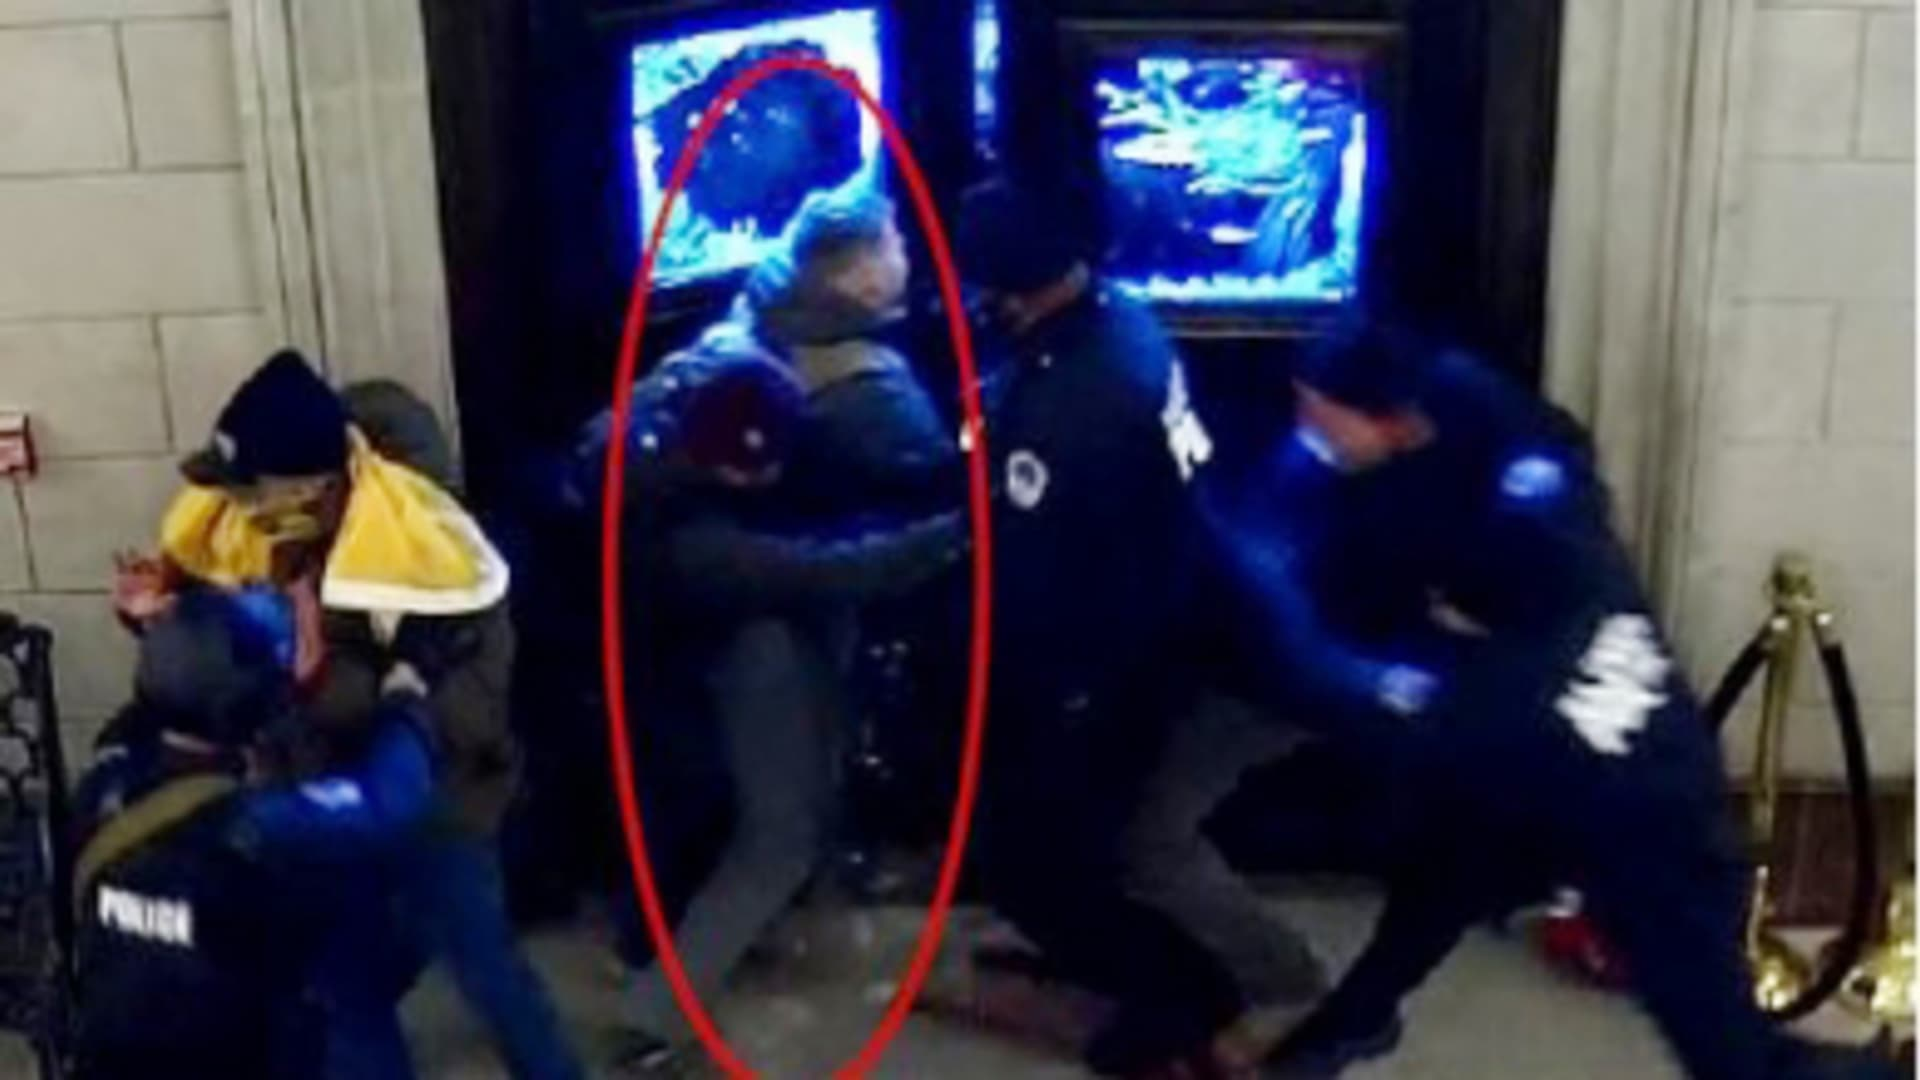 A still from a video released by the D.O.J. showing Christopher Warnagiris (circled in red), who is a Marine Corps commissioned officer stationed at the Marine Corps Base Quantico was arrested today in Virginia and charged with crimes related to the breach of the U.S. Capitol on Jan. 6.